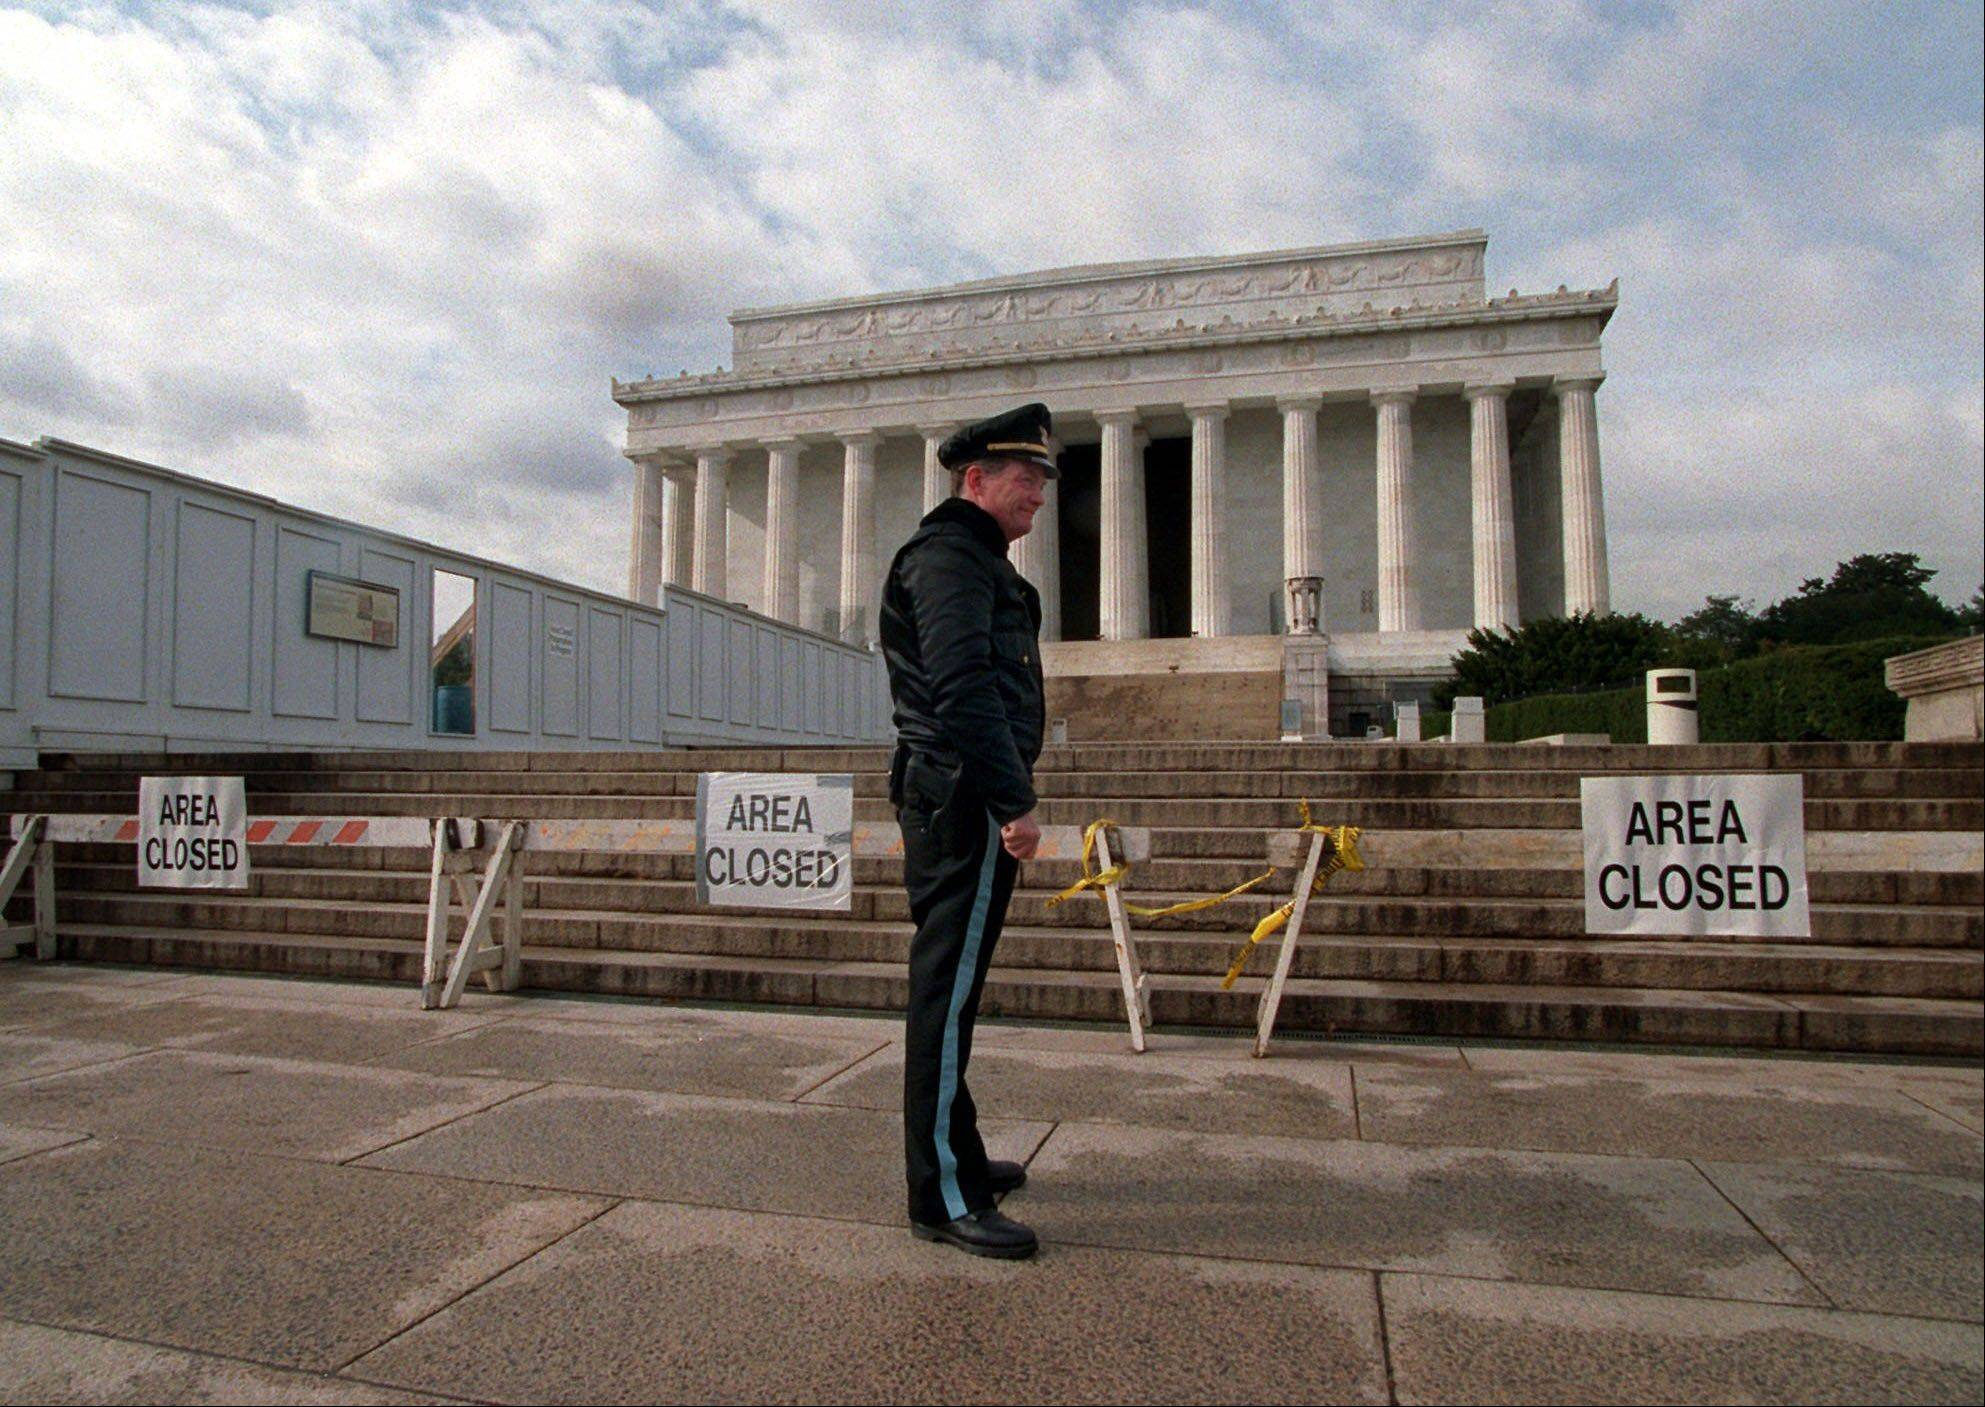 U.S. Park Service Police Officer P.G. Carroll stands in front of closed signs at the Lincoln Memorial in Washington, during a partial shutdown of the federal government. There have been 17 government shutdowns since 1976, ranging in length from one to 21 days.